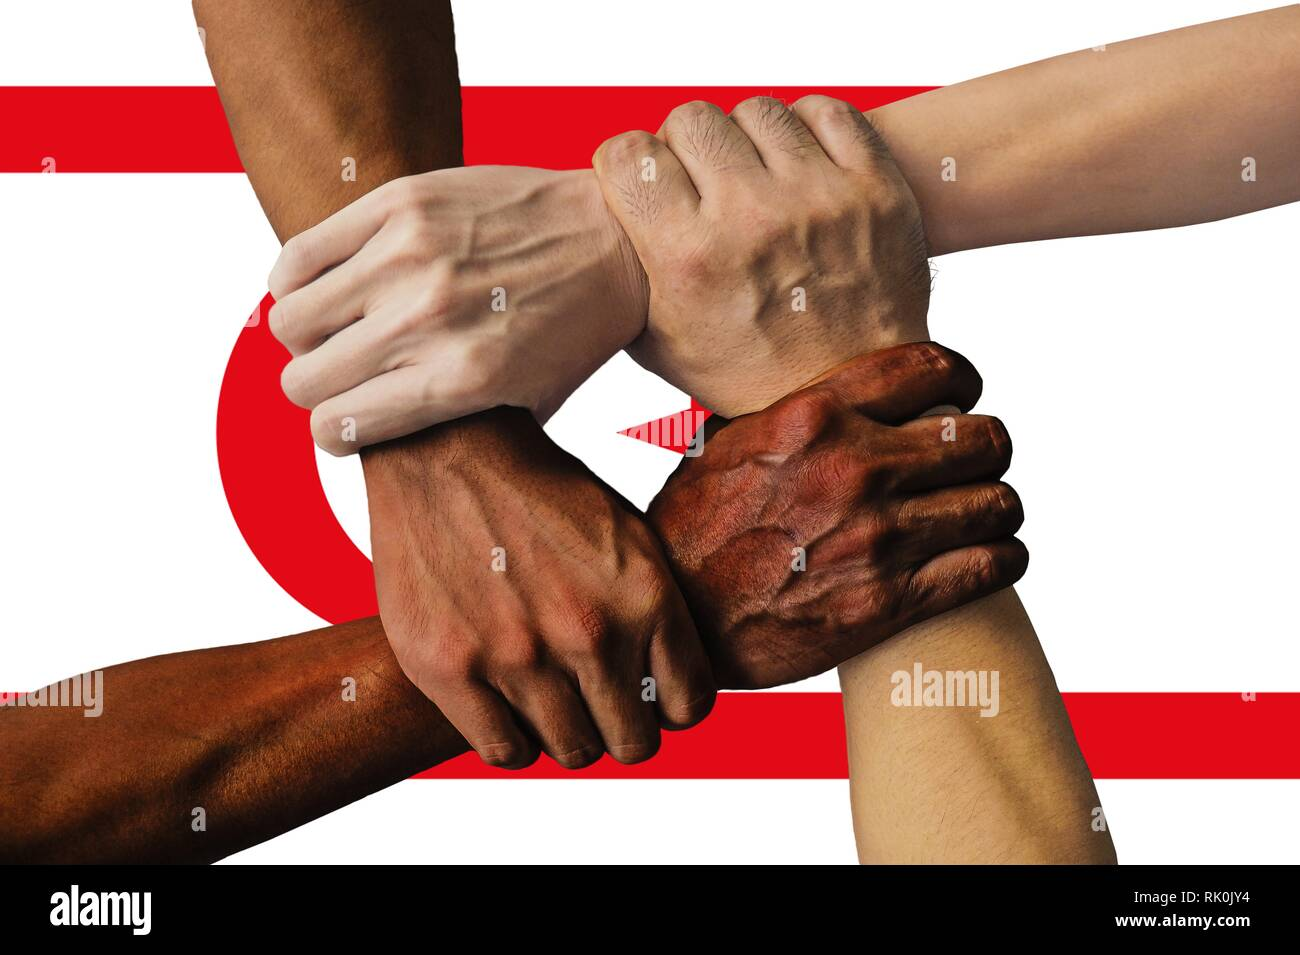 Turkish Republic of Northern Cyprus flag, intergration of a multicultural group of young people - Stock Image